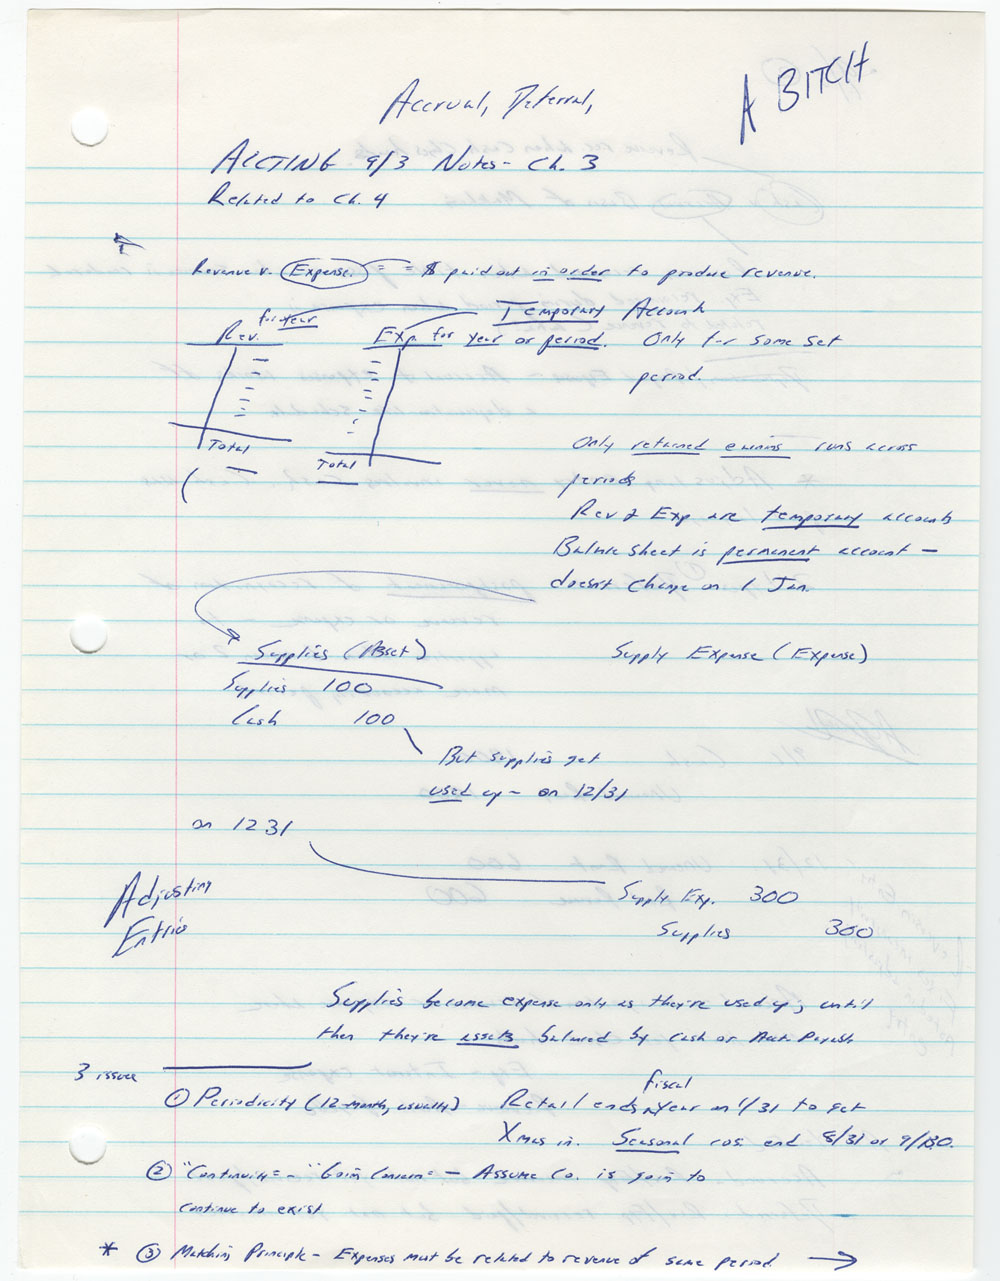 David Foster Wallace's notes from a tax accounting class